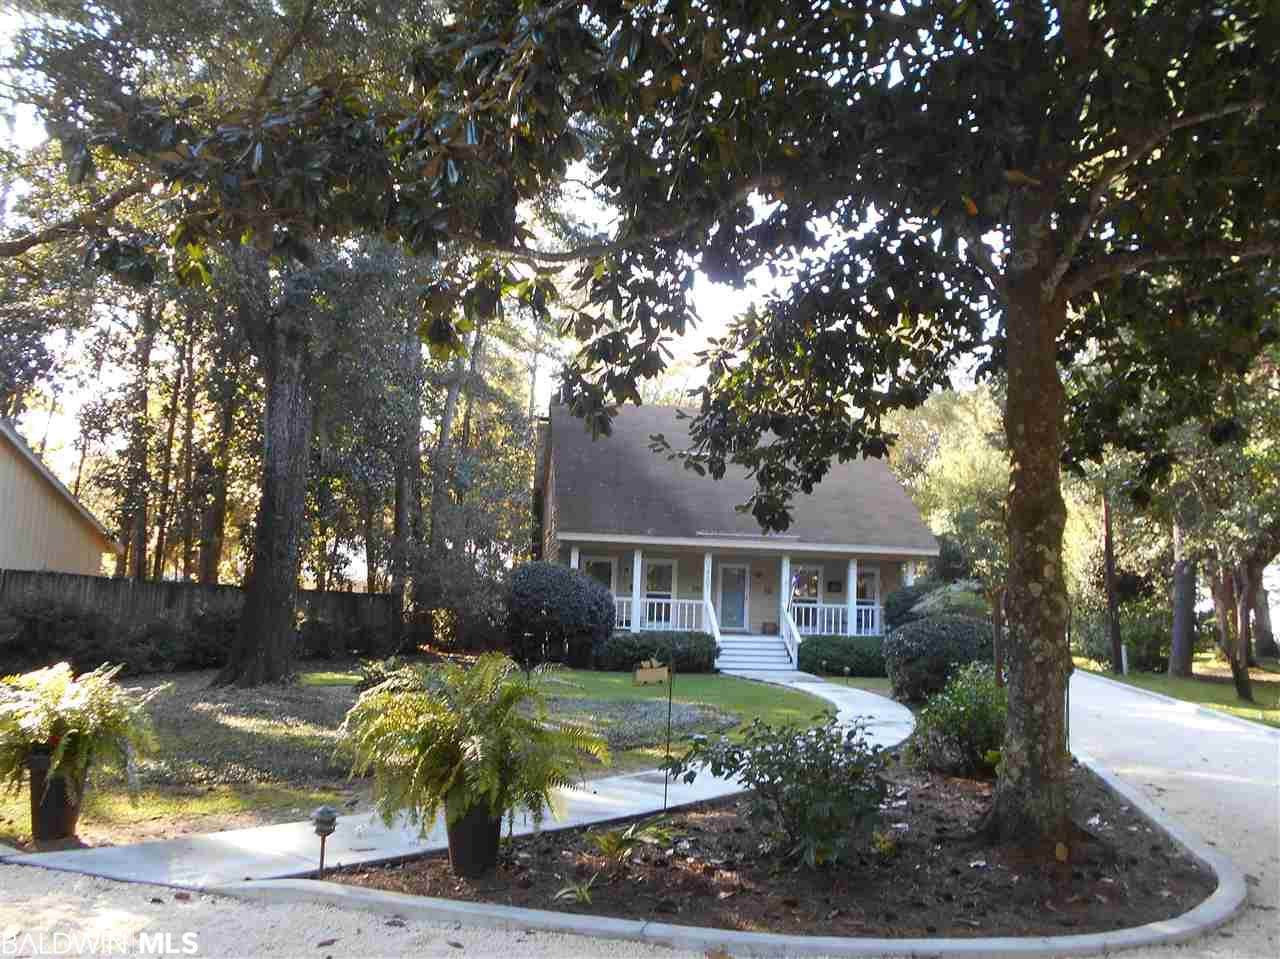 19307 Scenic Highway 98 - Photo 1